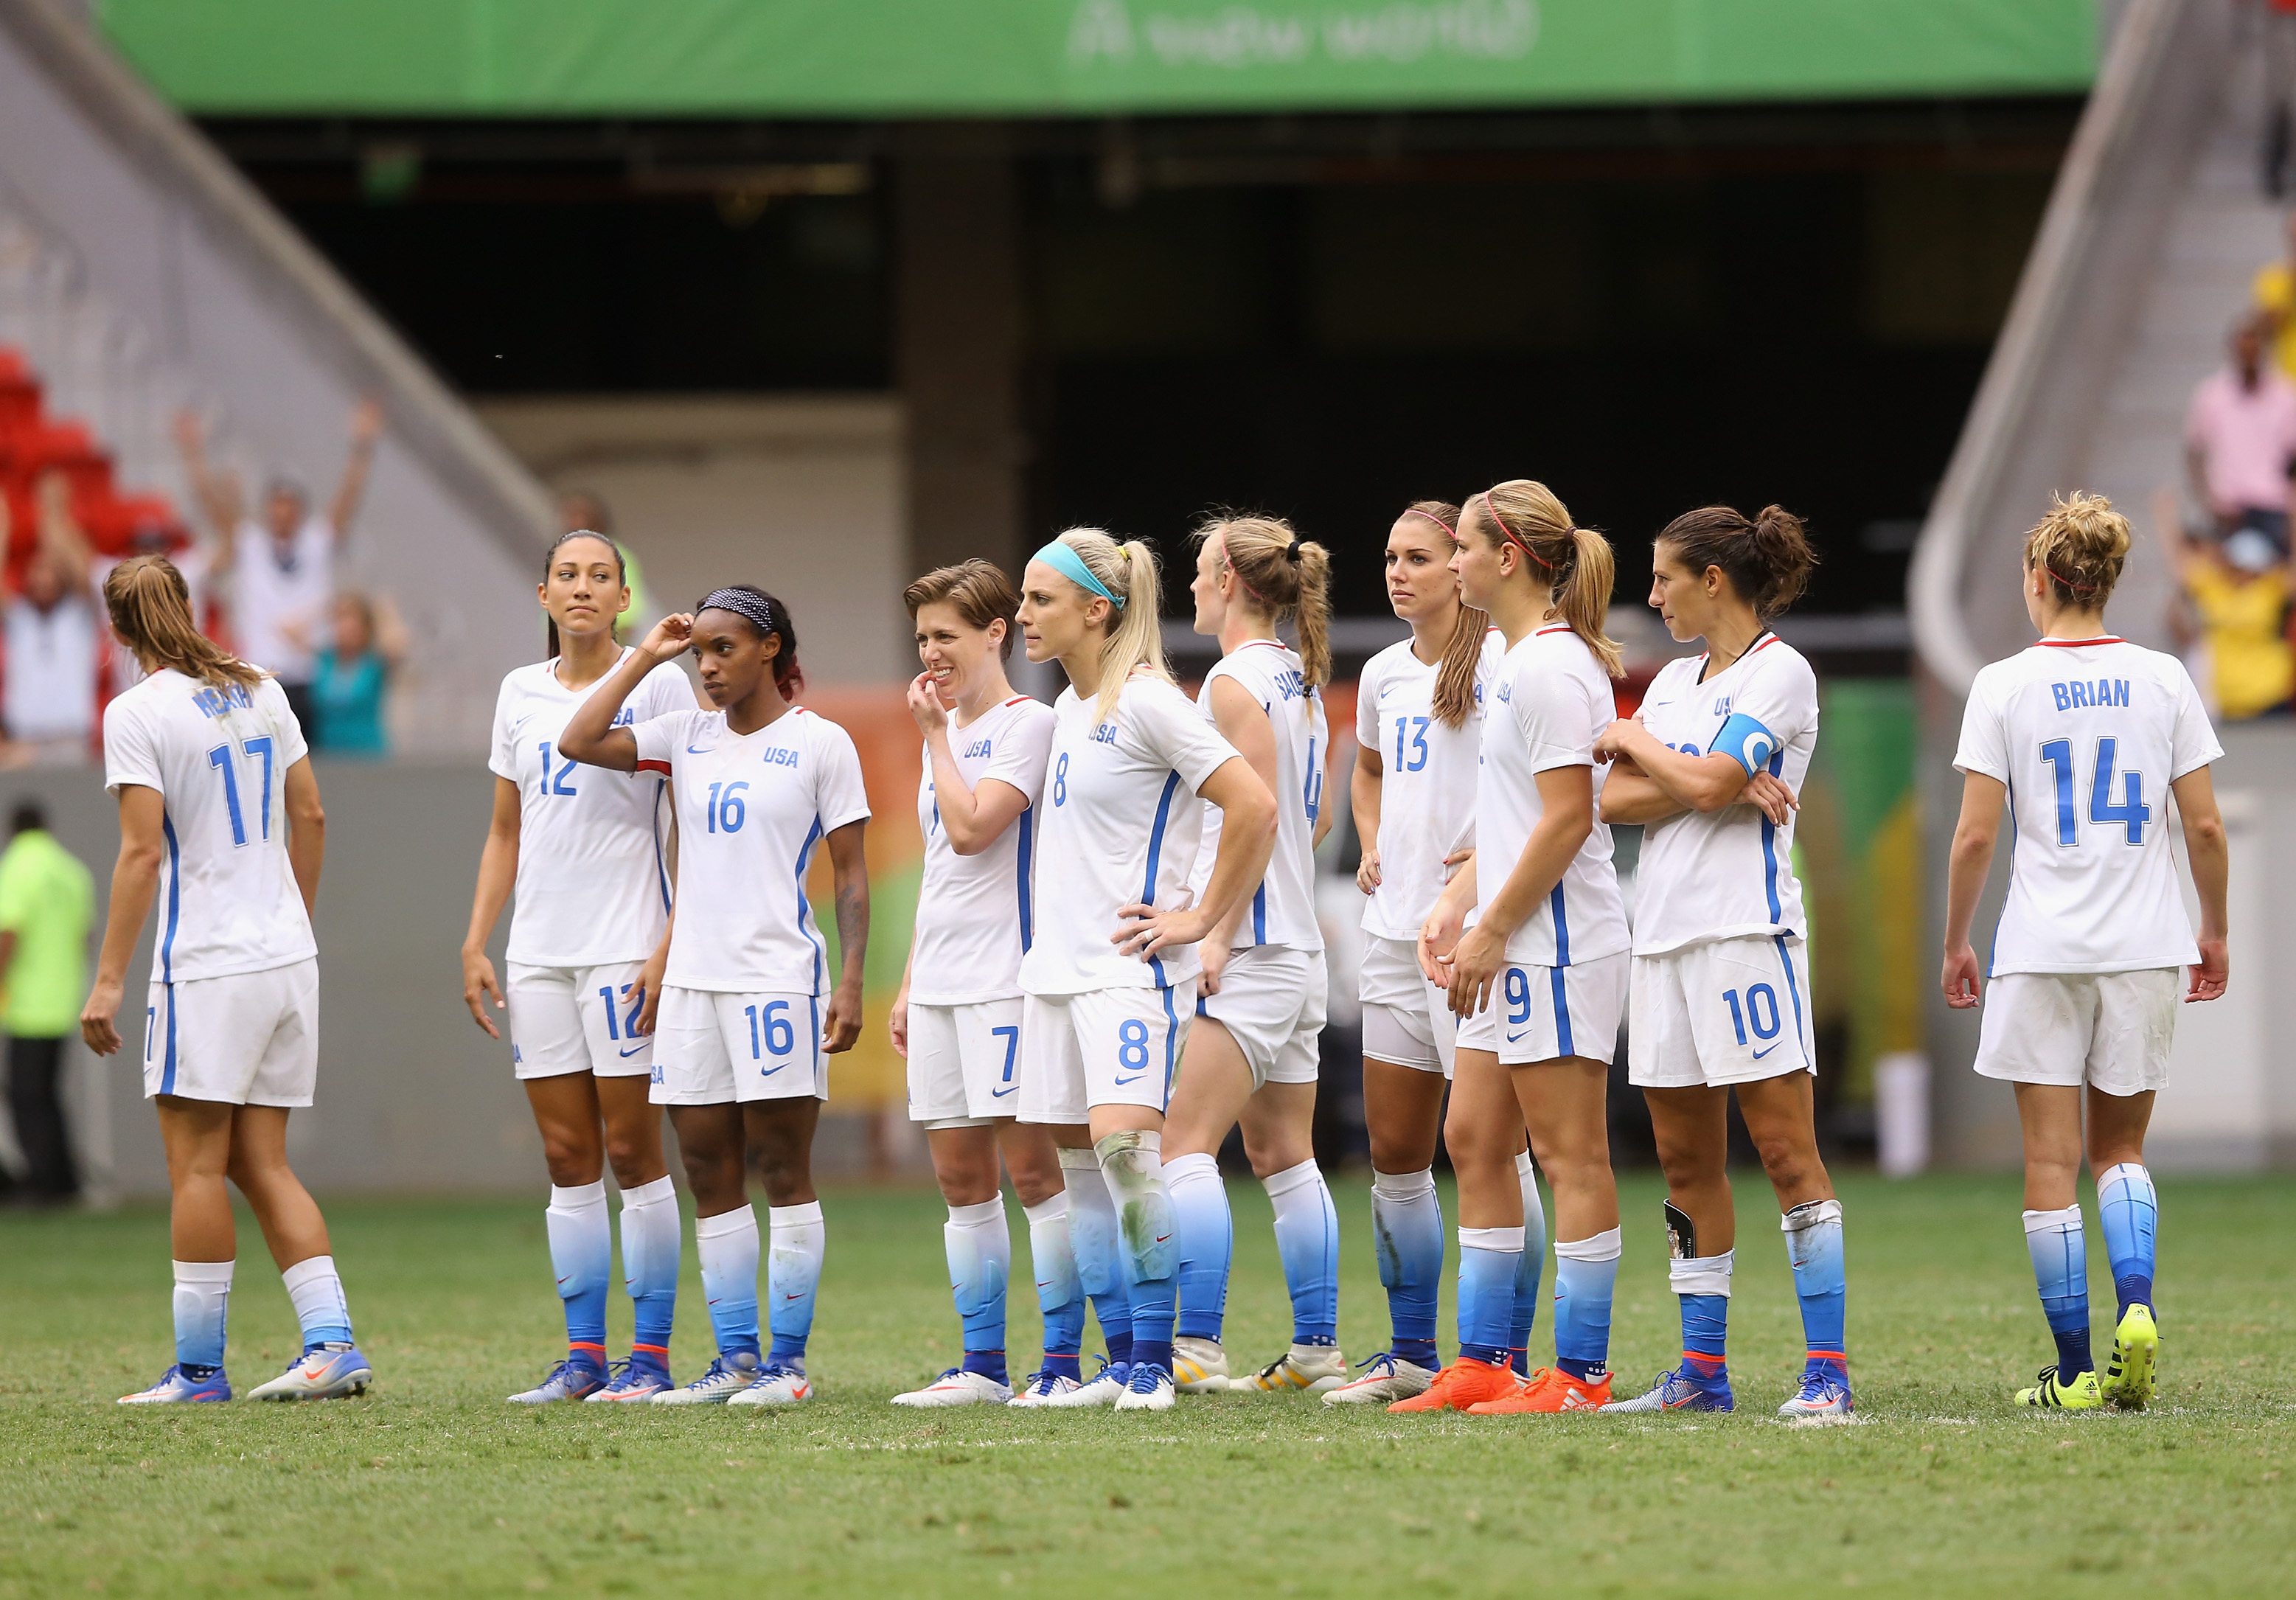 BRASILIA, BRAZIL - AUGUST 12:  The United States team reacts after their 1-1 (3-4 PSO) loss to Sweden during the Women's Football Quarterfinal match at Mane Garrincha Stadium on Day 7 of the Rio 2016 Olympic Games on August 12, 2016 in Brasilia, Brazil.  (Photo by Celso Junior/Getty Images)